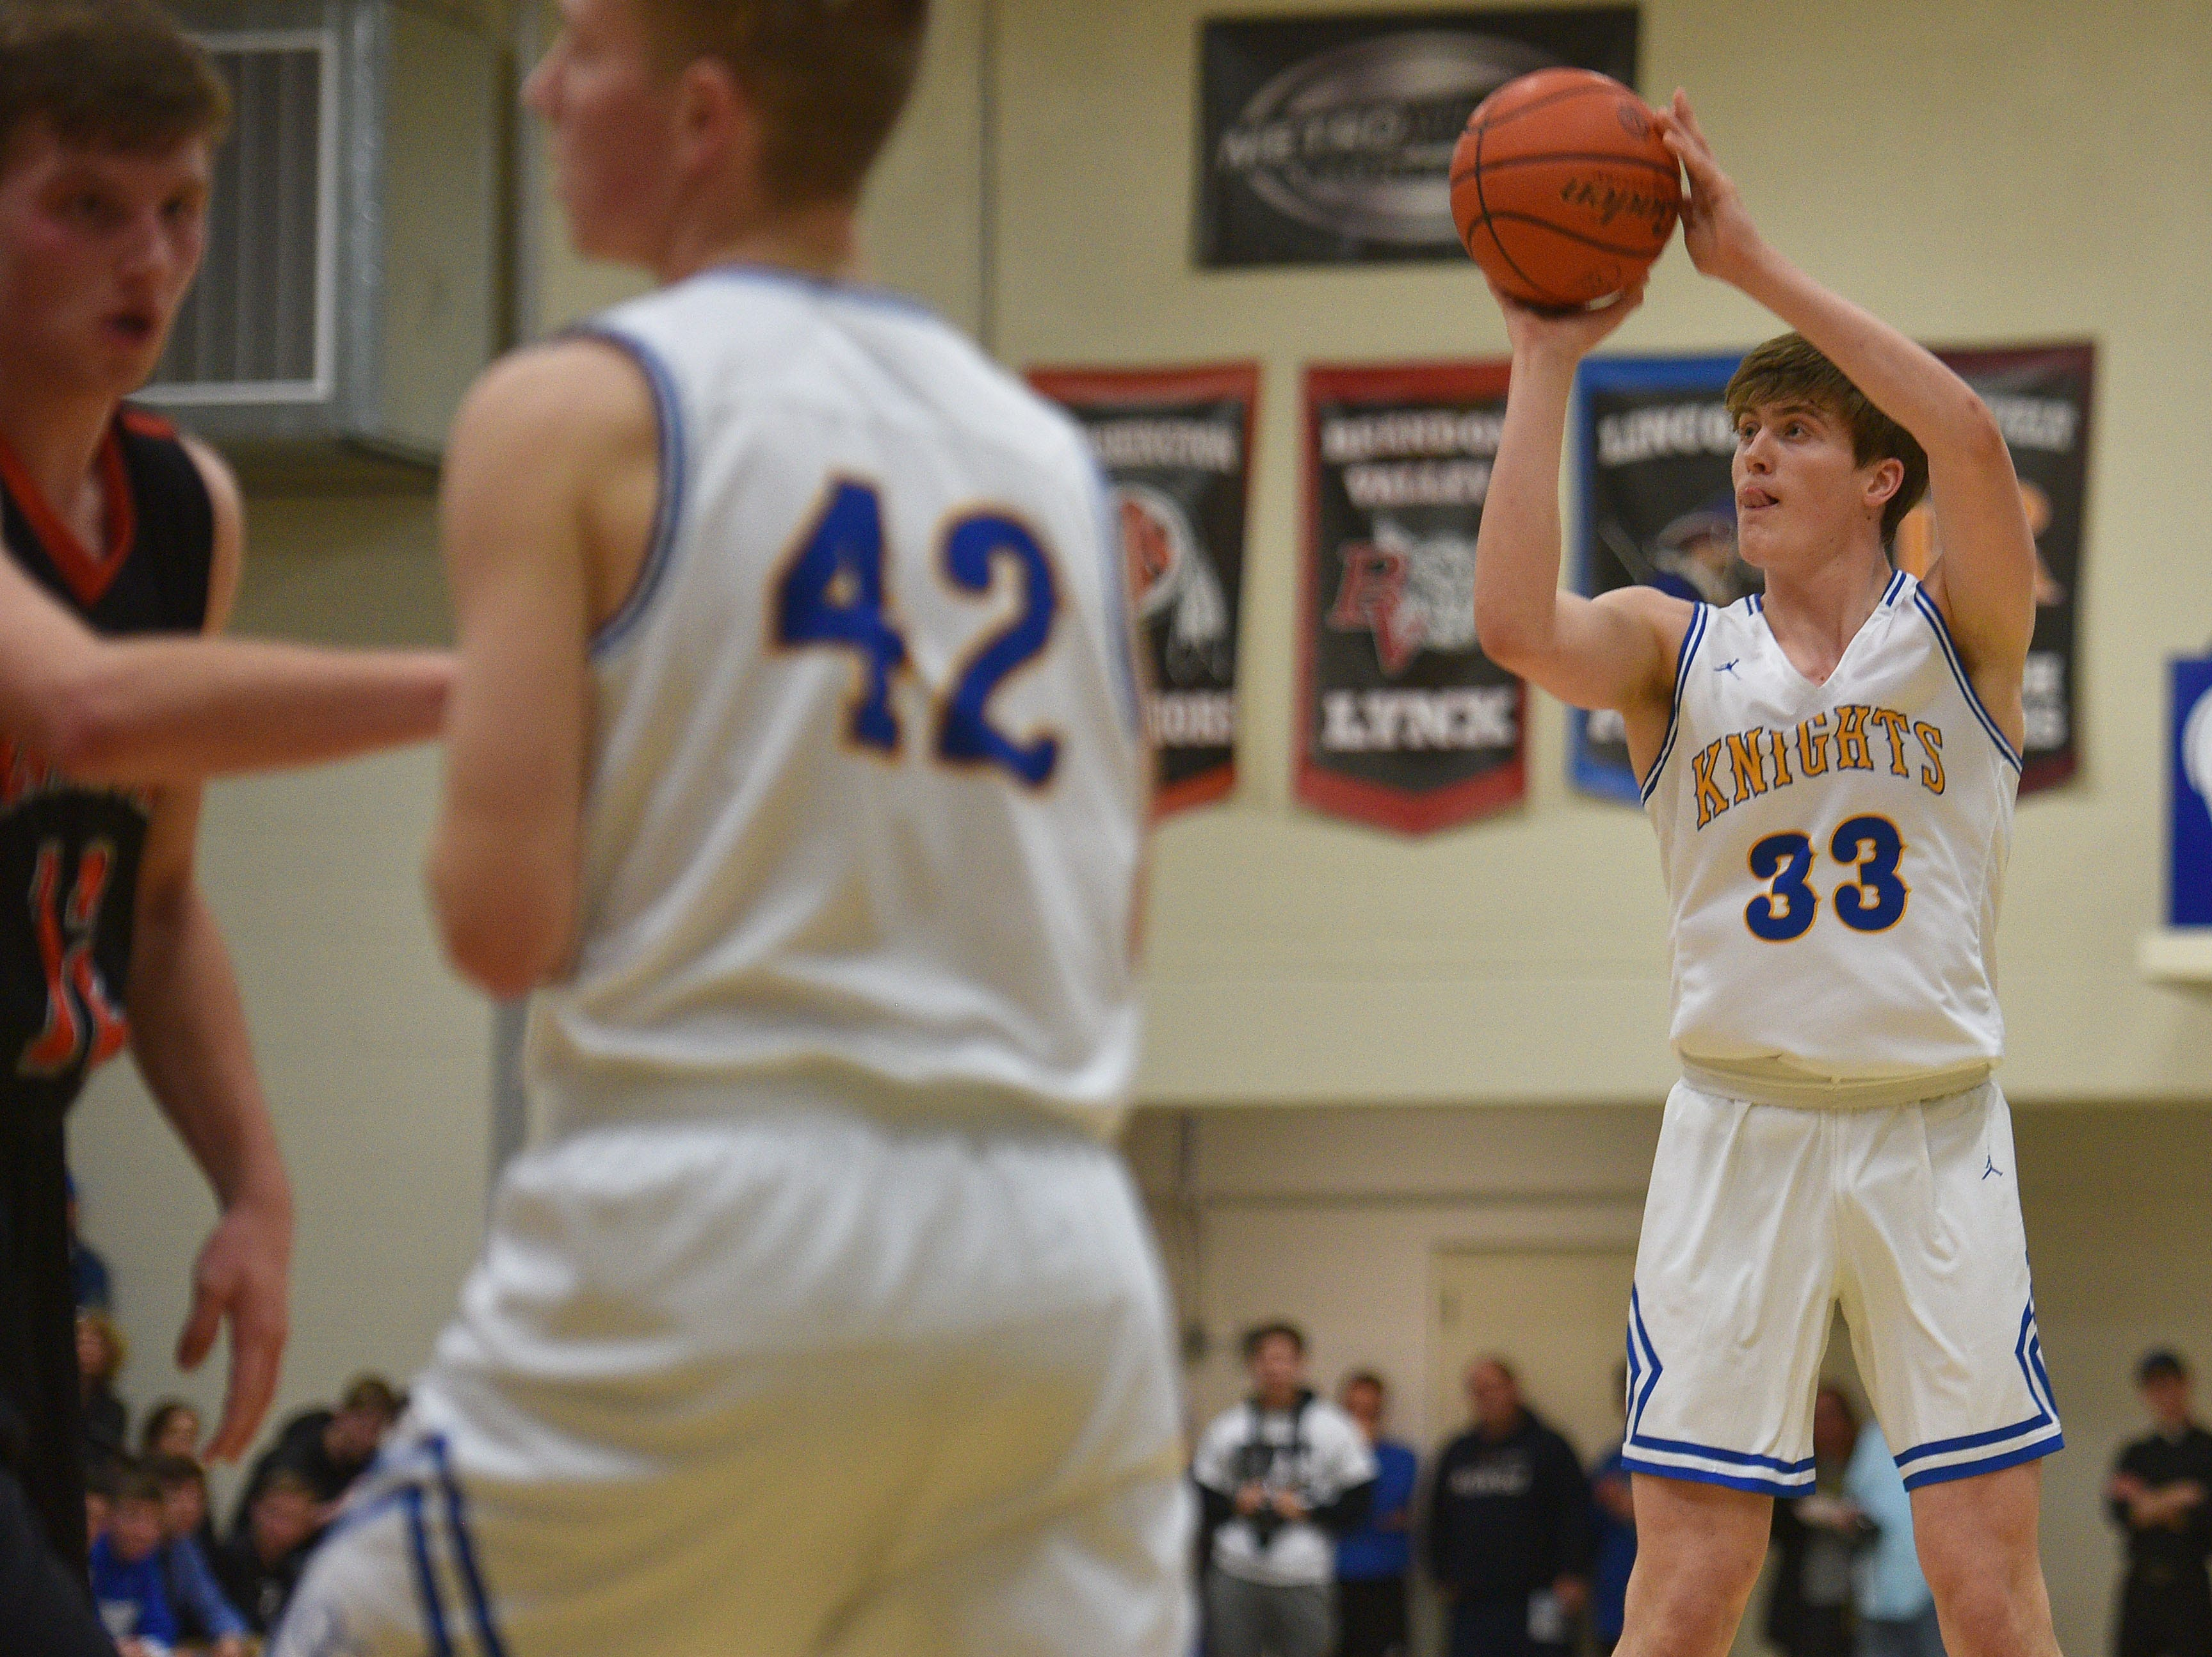 O'Gorman's Cole Bruhn attempts to score against Washington during the game Thursday, Jan. 10, at O'Gorman in Sioux Falls.